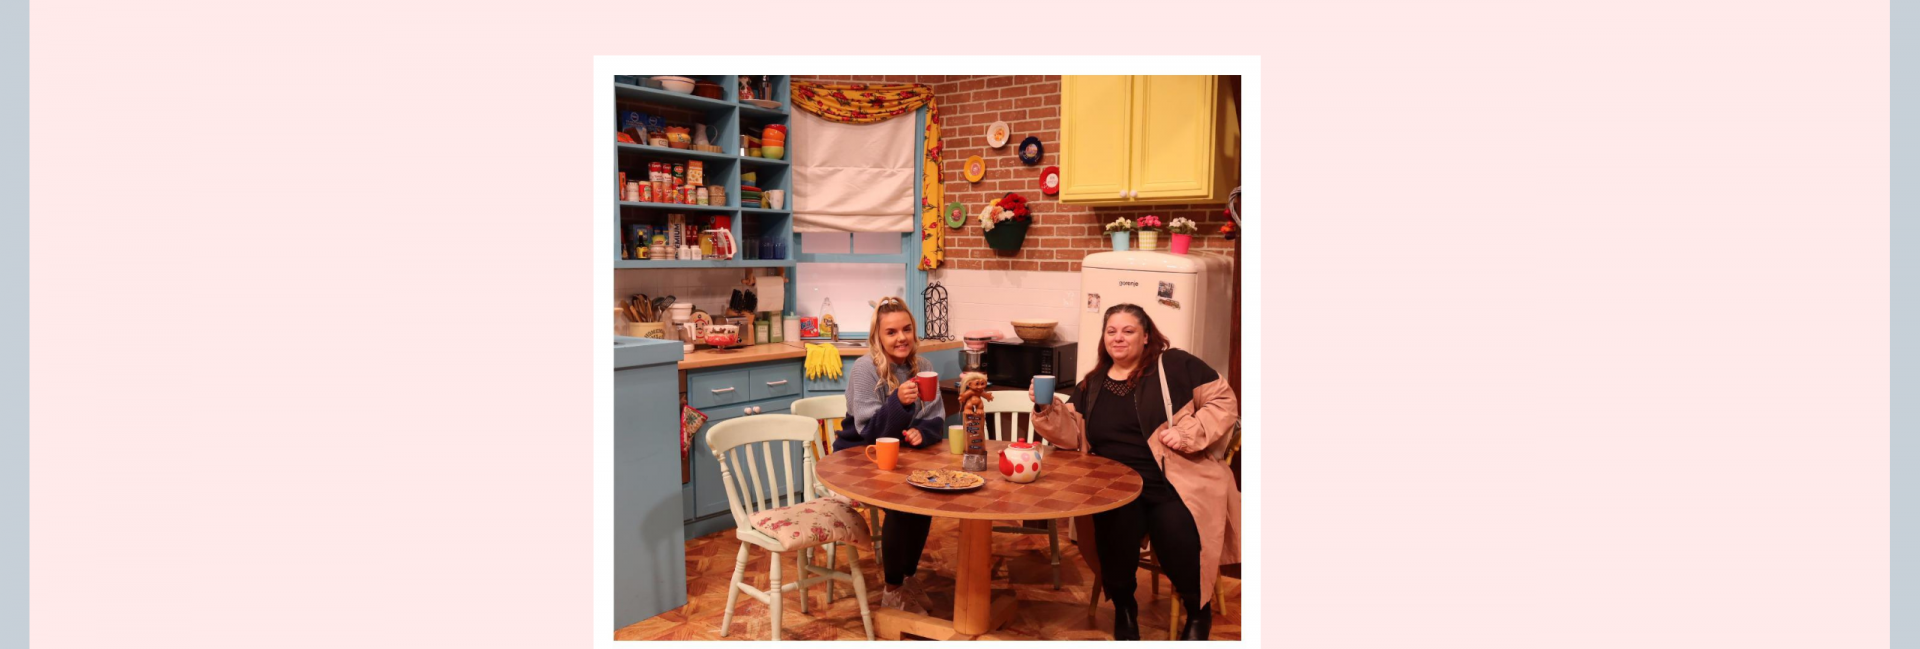 Chloe and myself at Friendsfest in Monica's apartment